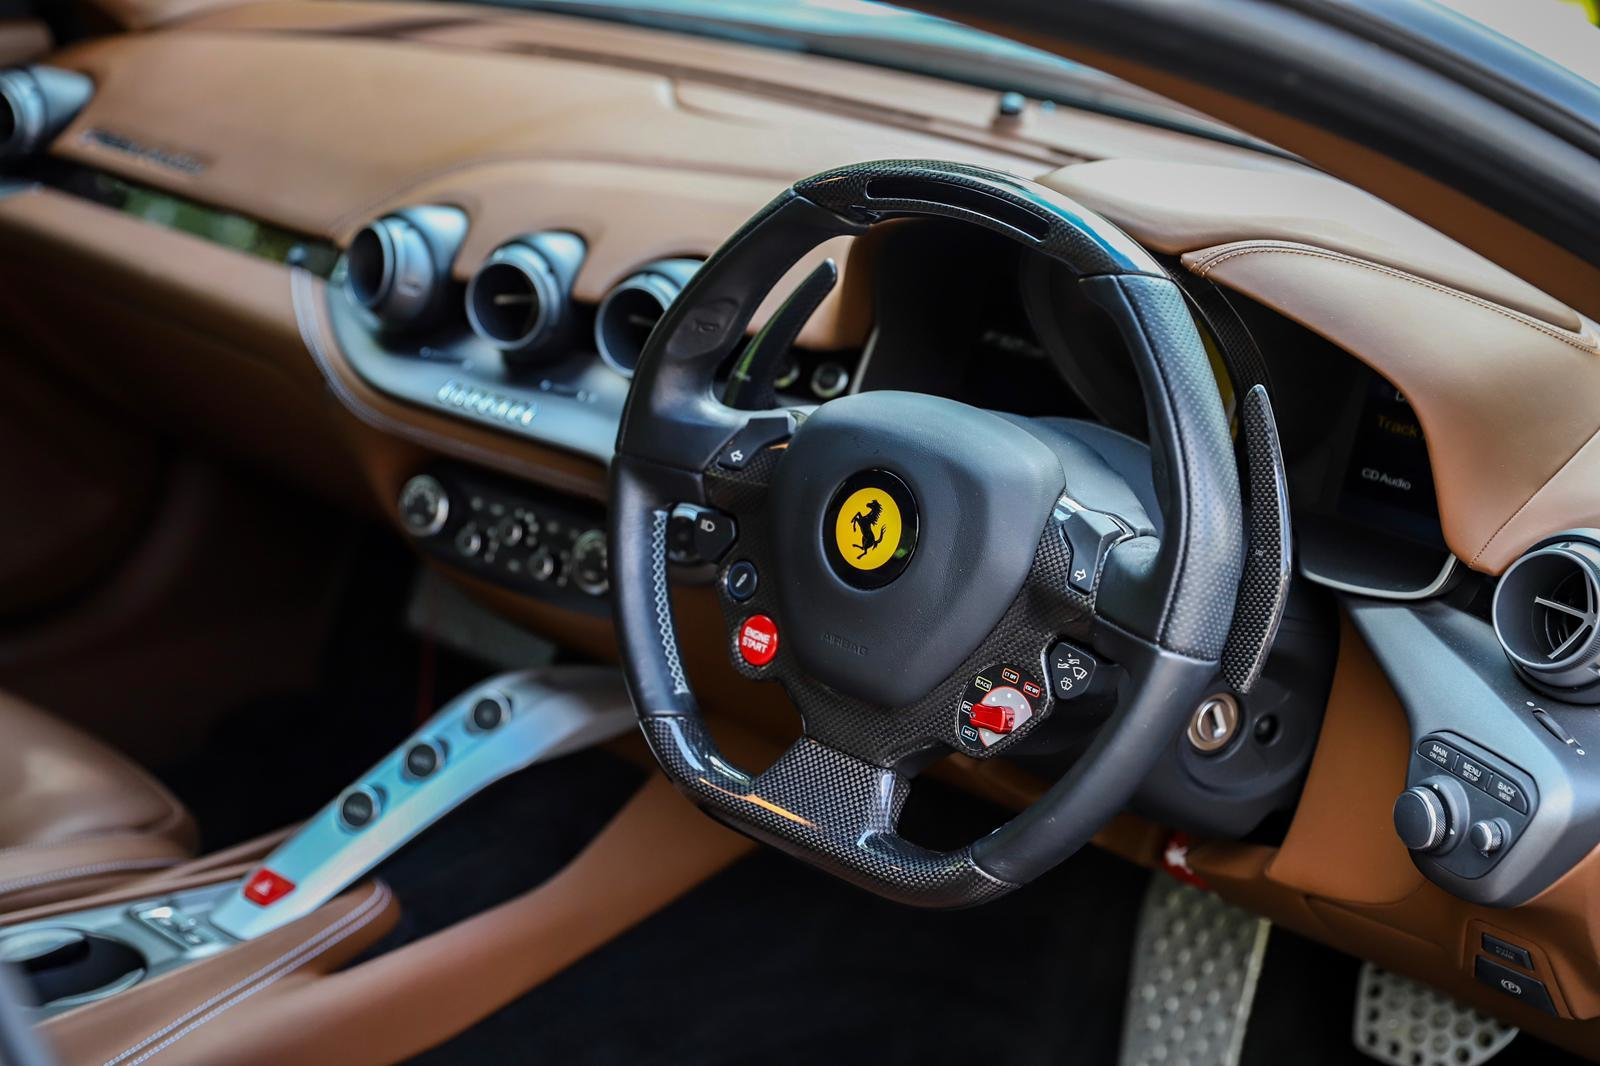 2013 STRIKING F12 JUST 2 OWNERS FERRARI 7 YEAR FULL SERVICE PLAN For Sale (picture 4 of 6)